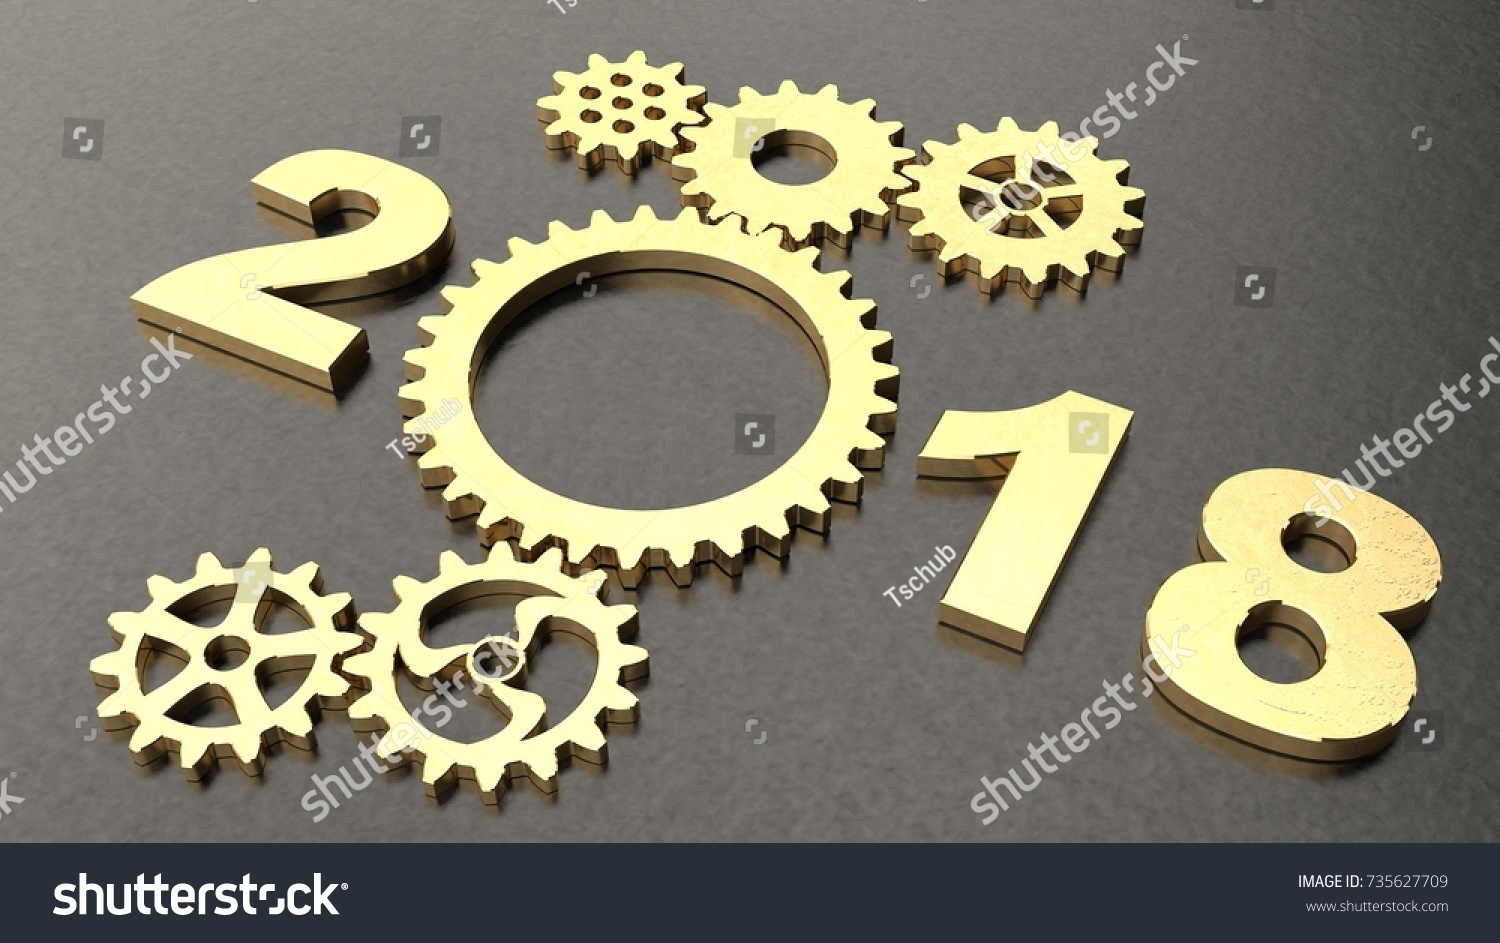 2018 metal brushed metal surface symbol stock illustration 2018 metal brushed metal surface a symbol of aging with golden gears reducer biocorpaavc Gallery